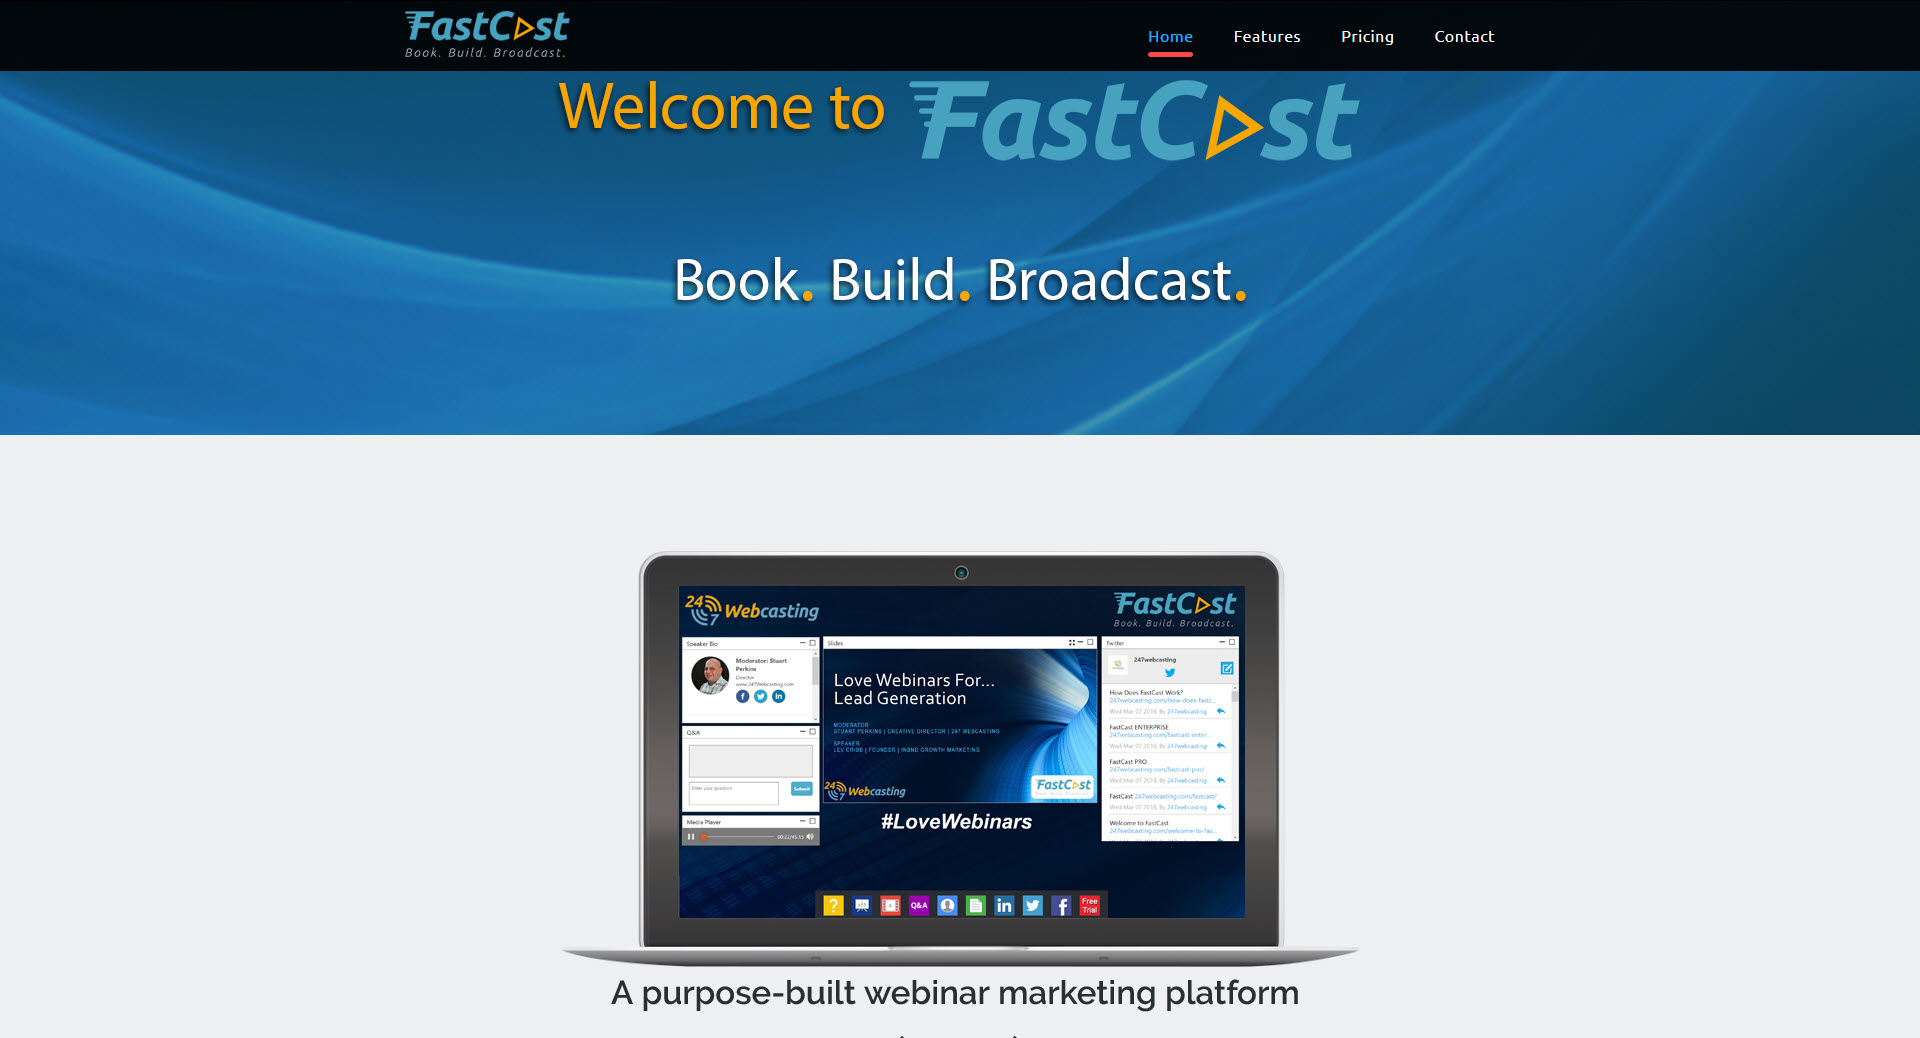 FastCast; the brand-new, hassle-free, super-quick approach to webinars